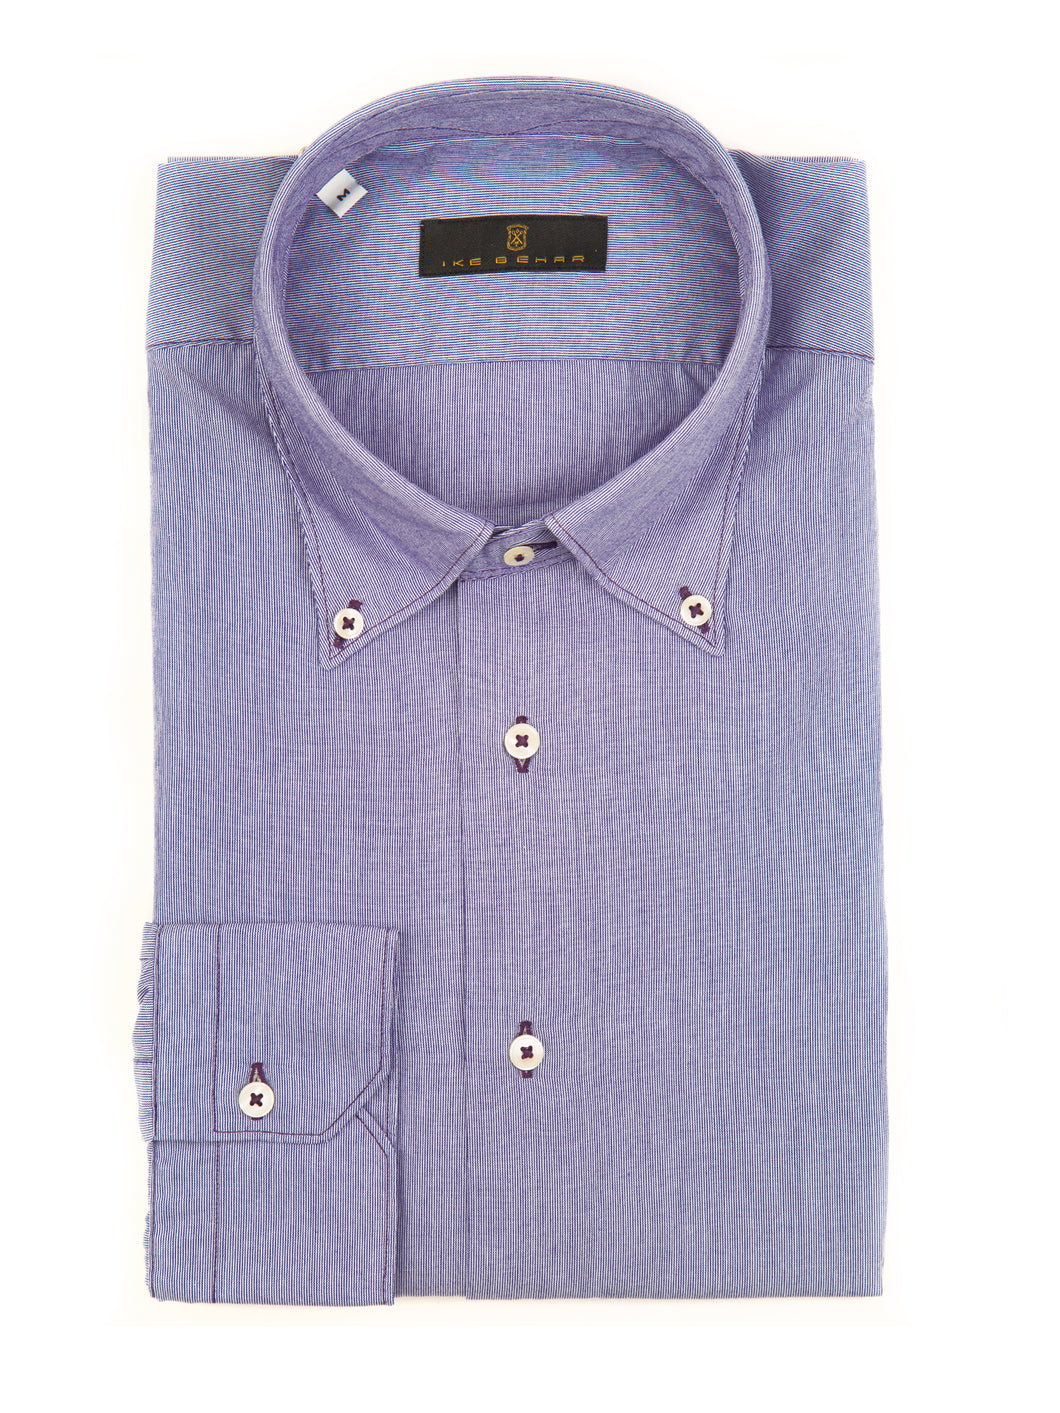 Indigo Shadow Stripe Sport Shirt with Merlot Contrast Stitching